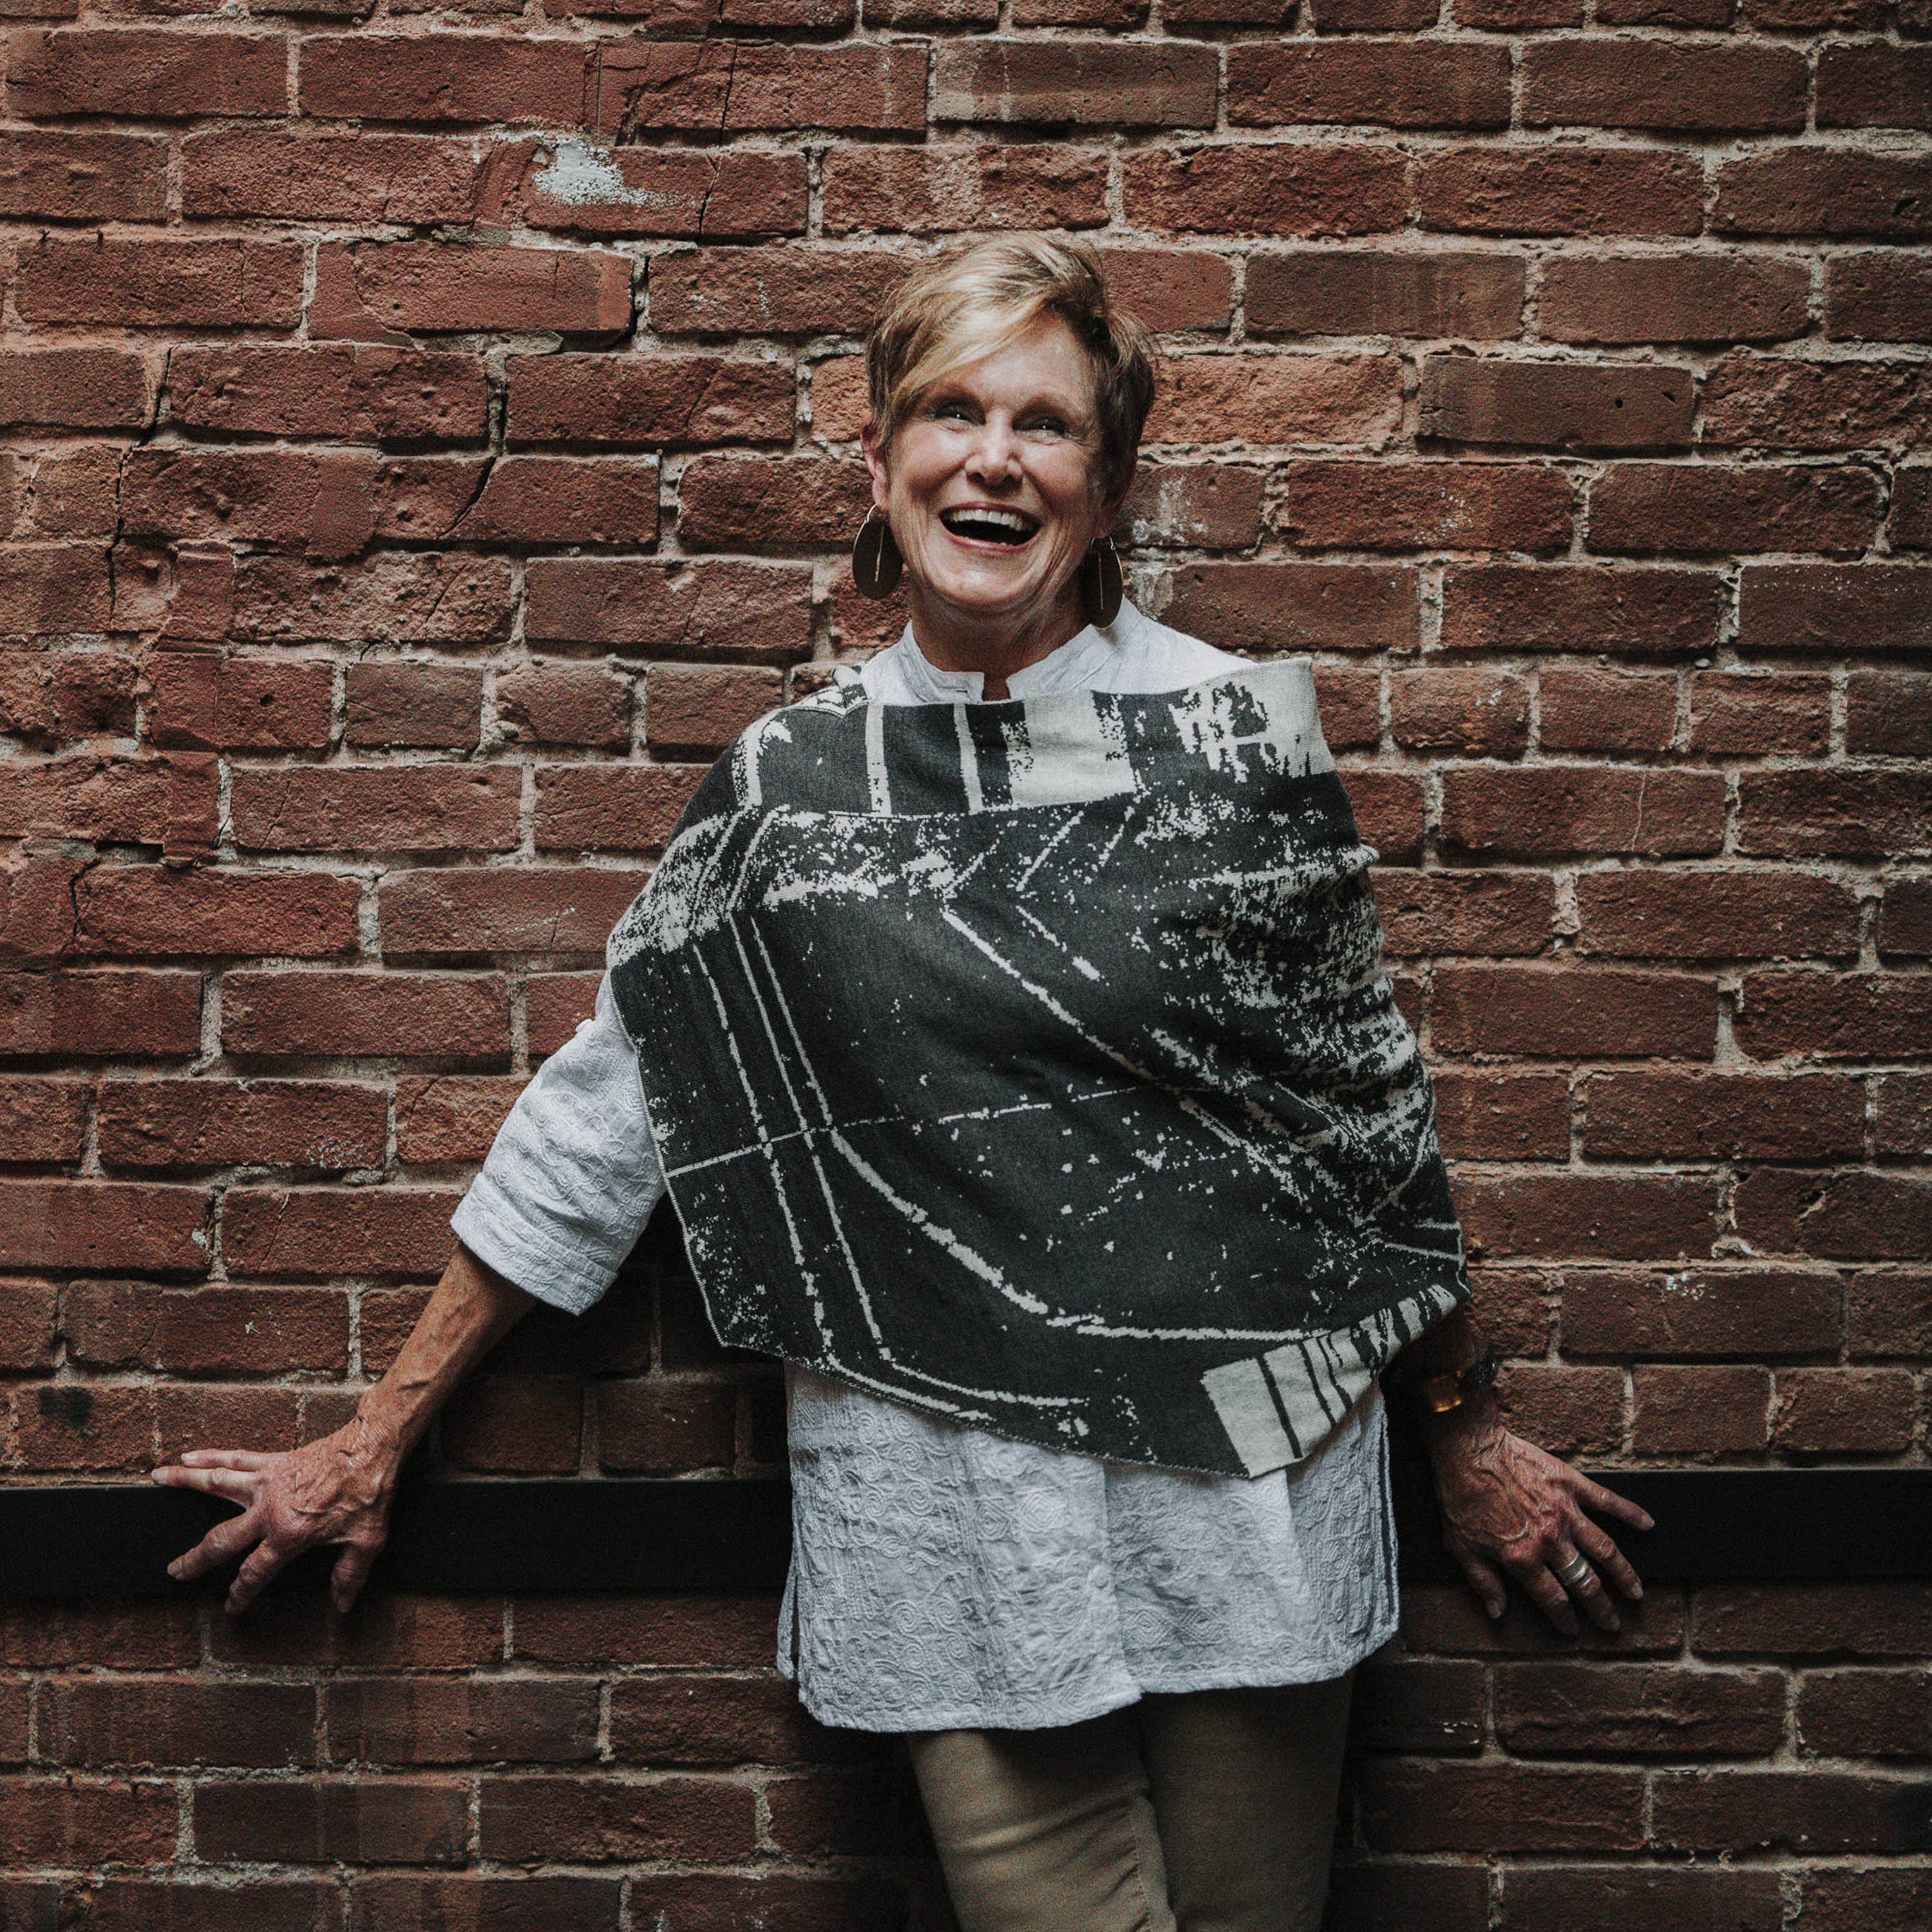 Contemporary Scottish knitwear - a cape-poncho in charcoal grey and stone white. A woman wears this while laughing, standing against a brick wall.